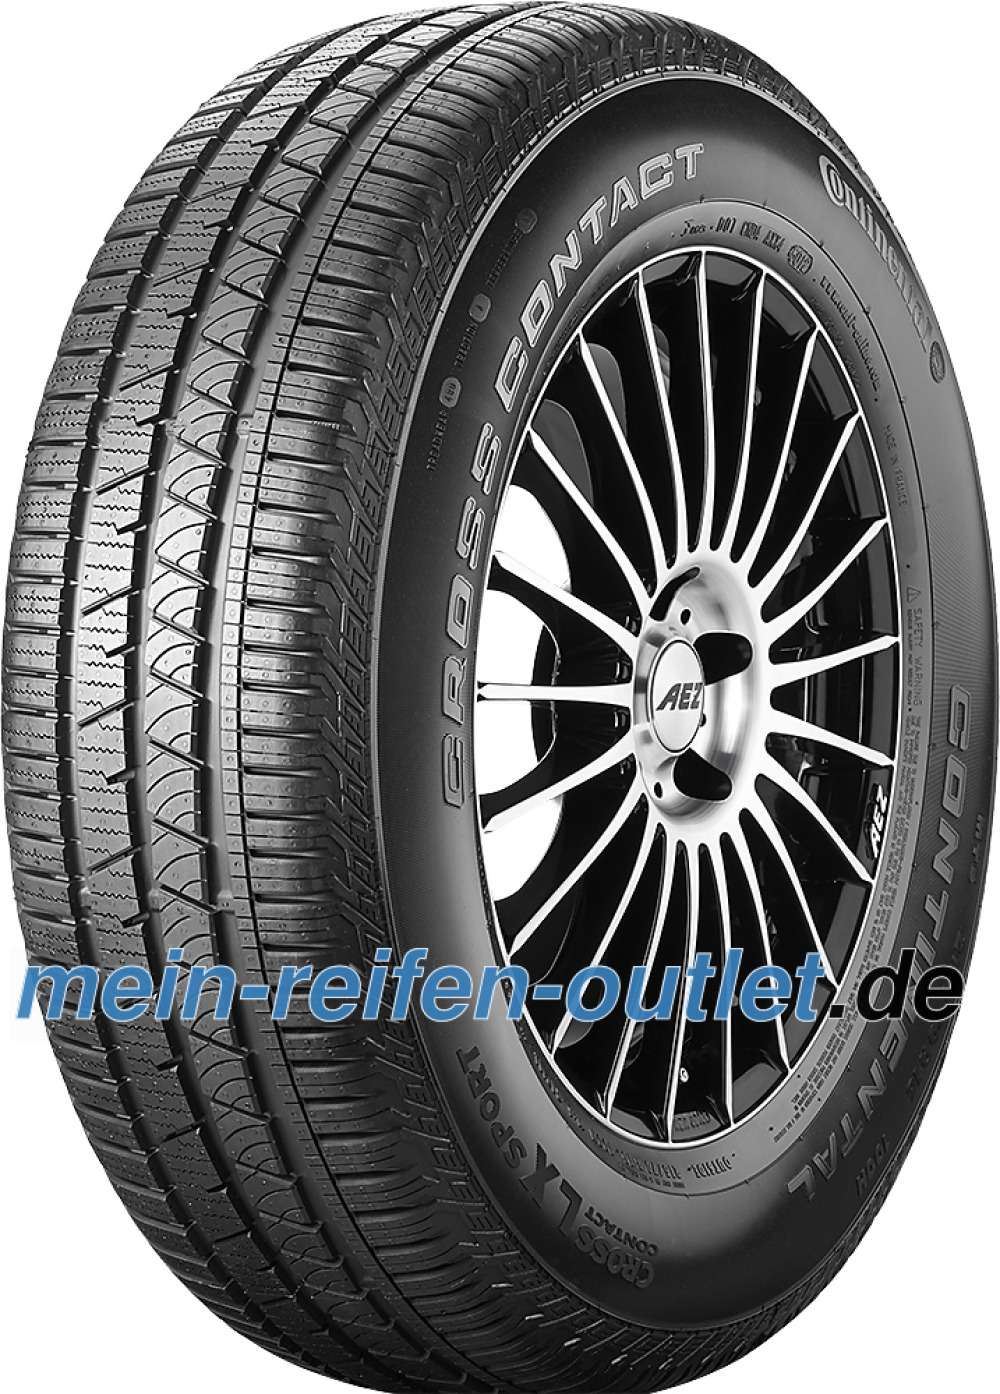 Continental ContiCrossContact LX Sport ( 255/45 R20 105H XL , VOL, mit Felgenrippe )